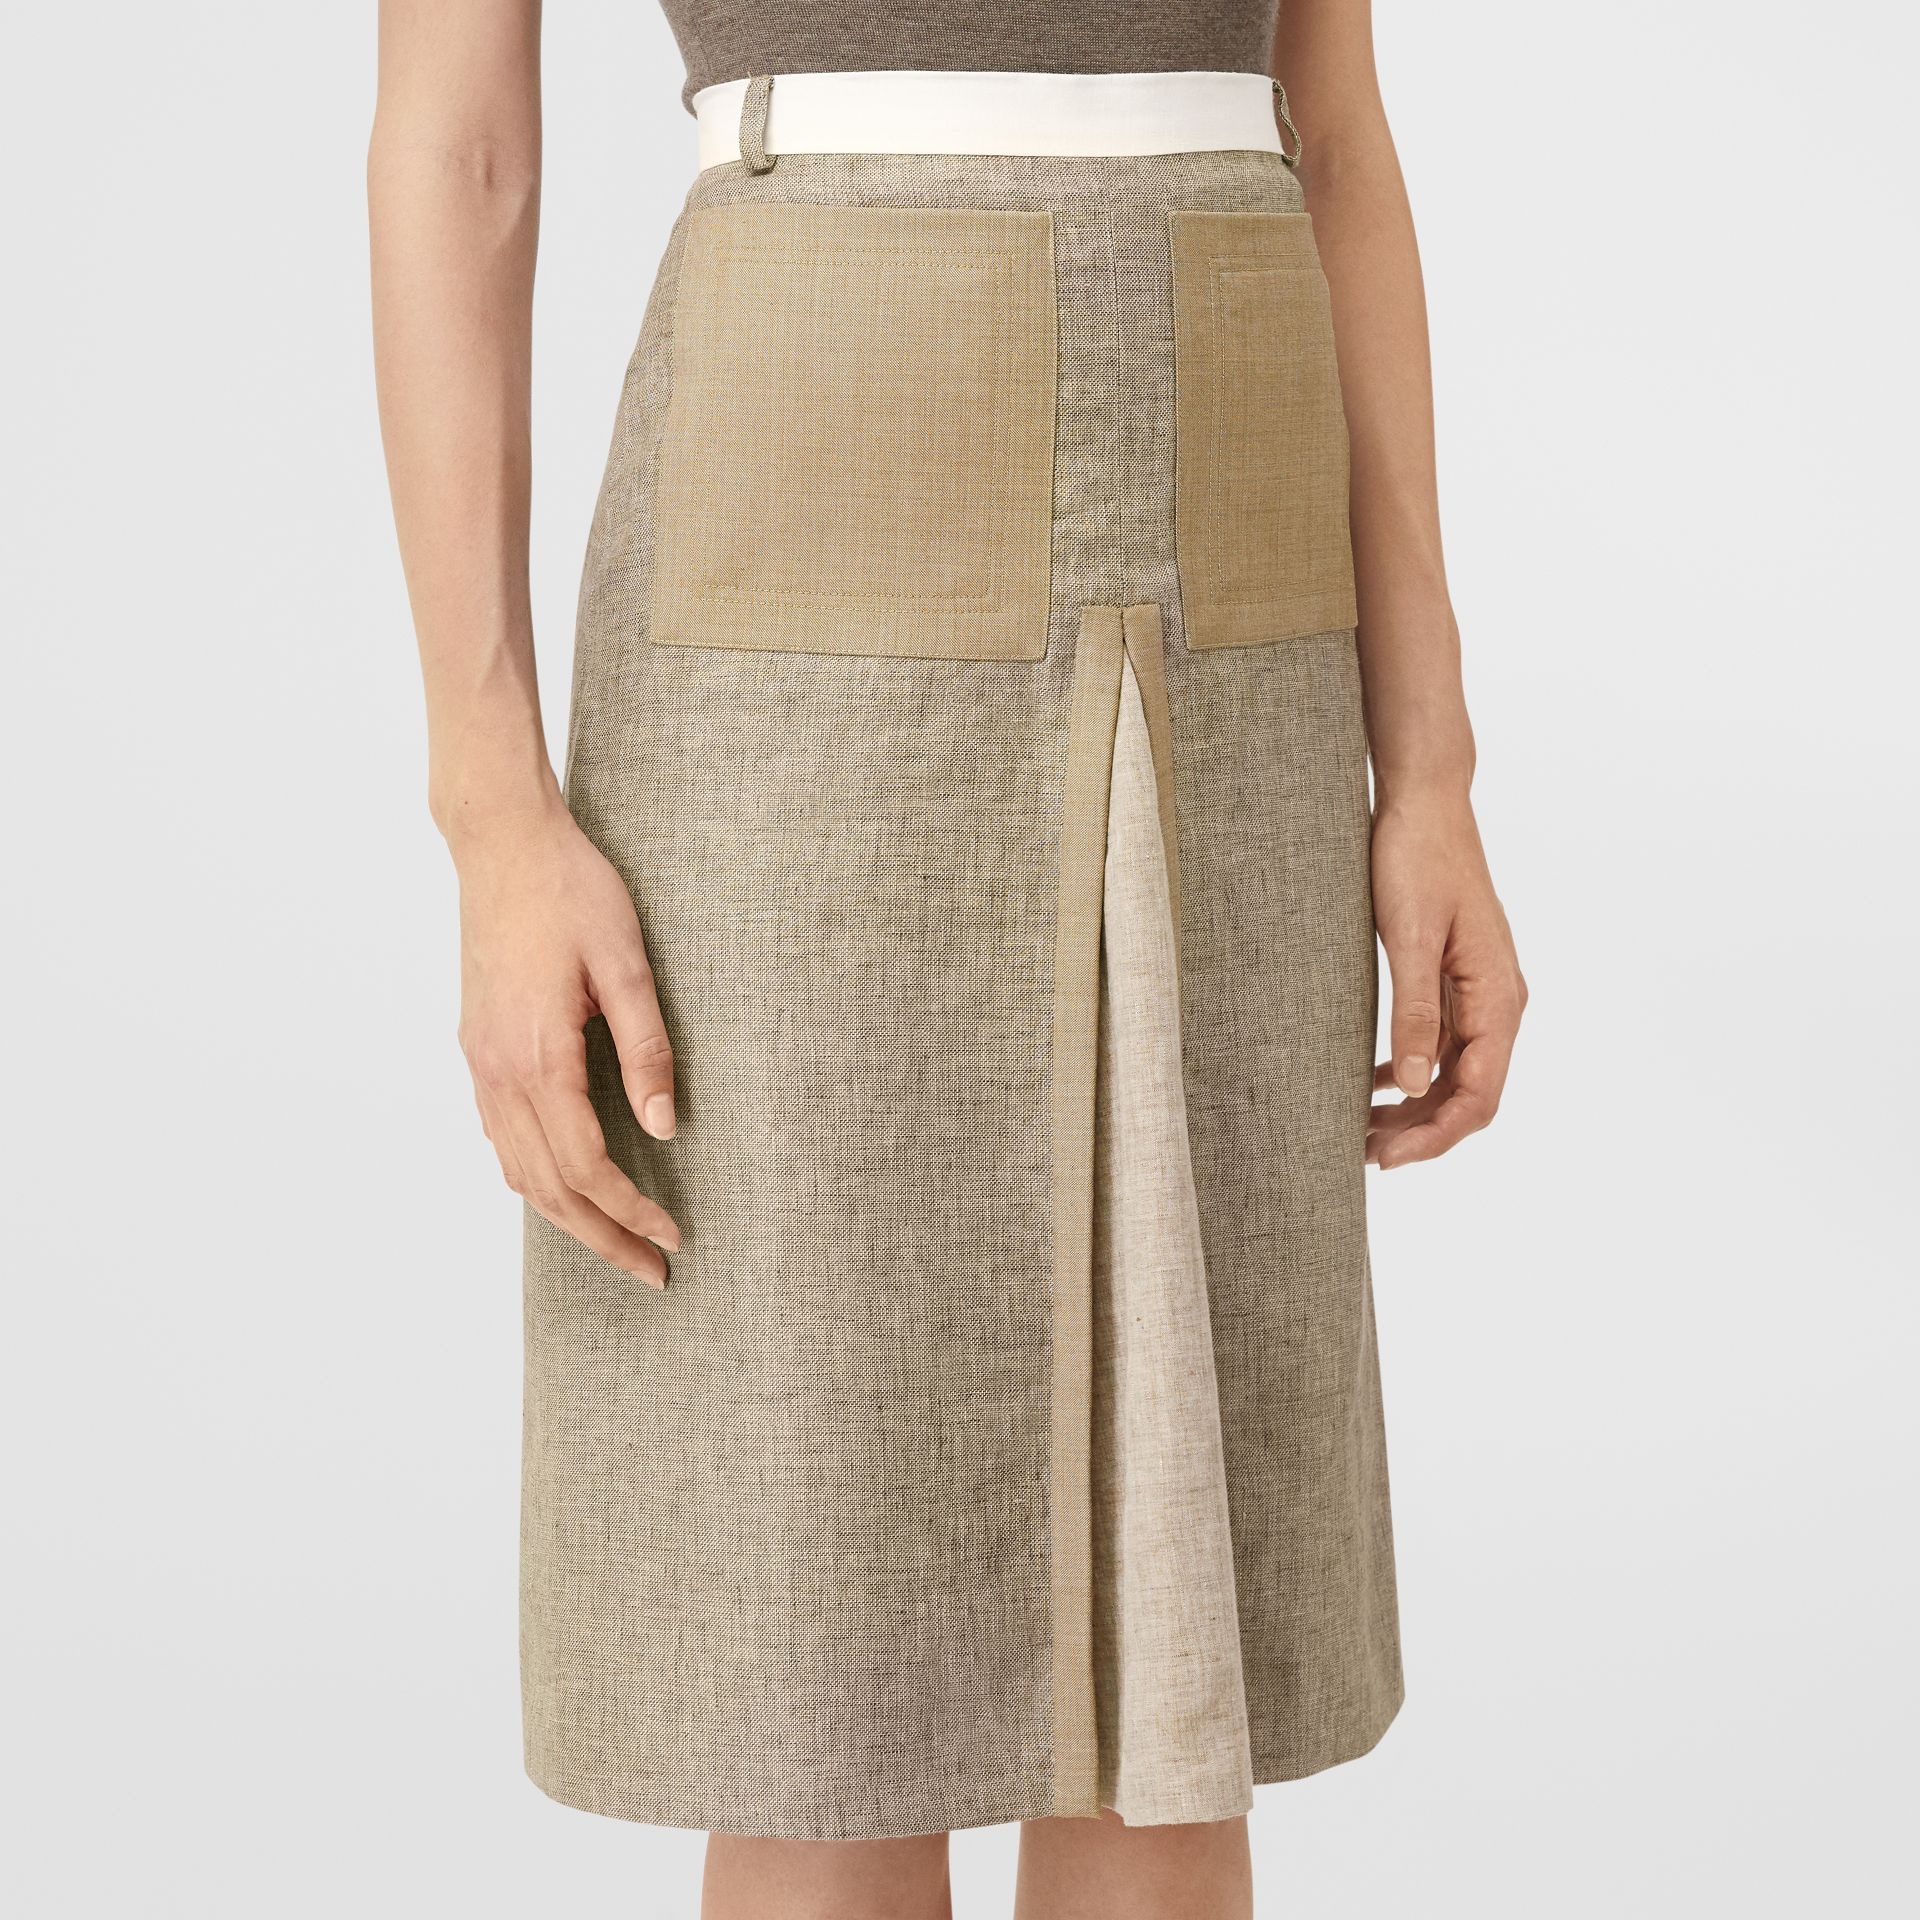 Box-pleat Detail Wool Cashmere A-line Skirt in Pecan Melange - Women | Burberry Canada - gallery image 4